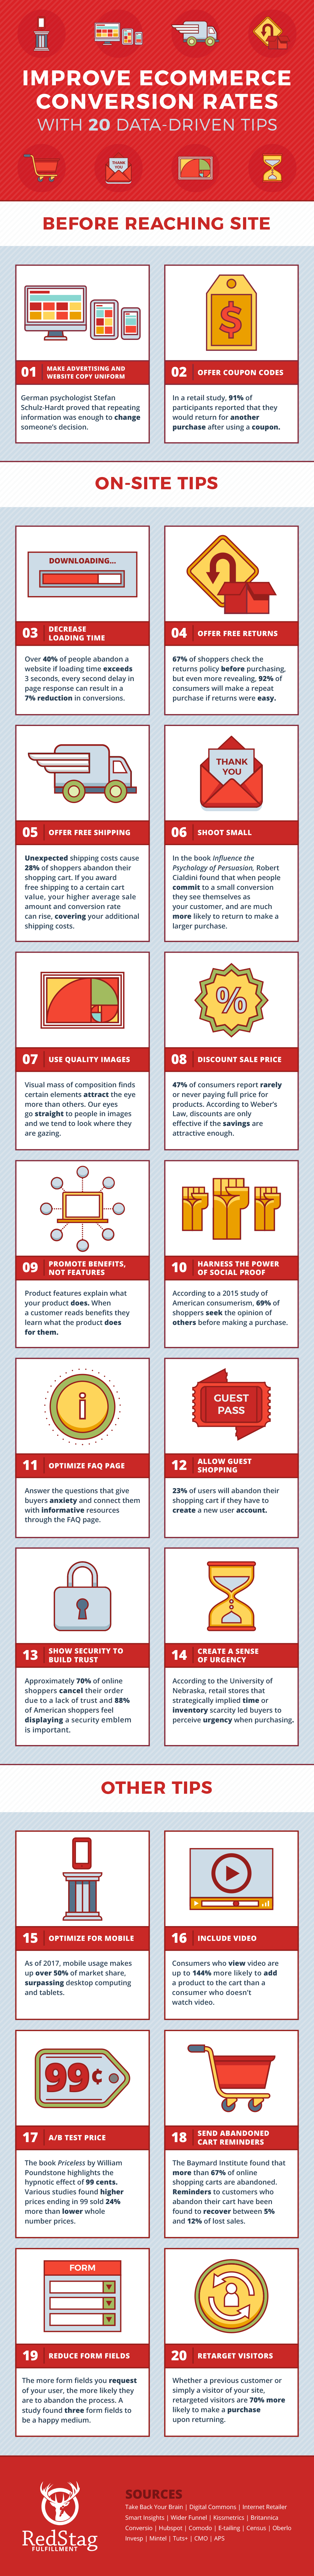 conversion-rate-infographic-red-stag-fulfillment.png